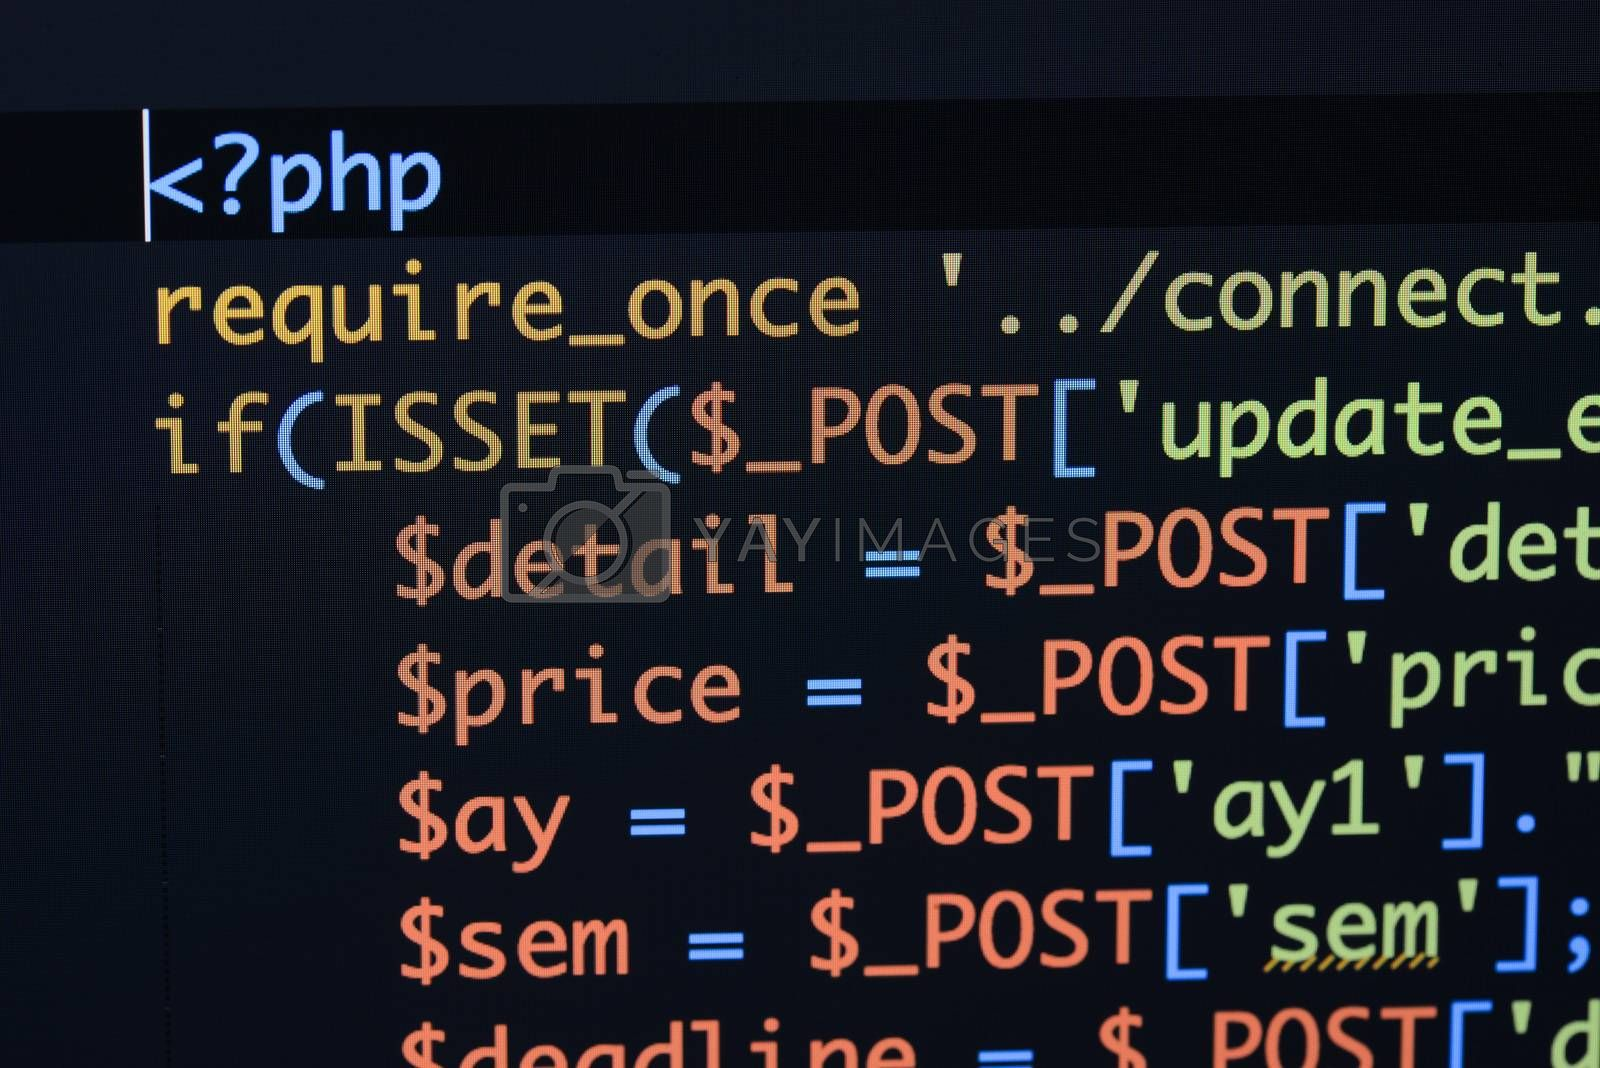 Real Php code developing screen. Programing workflow abstract algorithm concept. Lines of Php code visible.